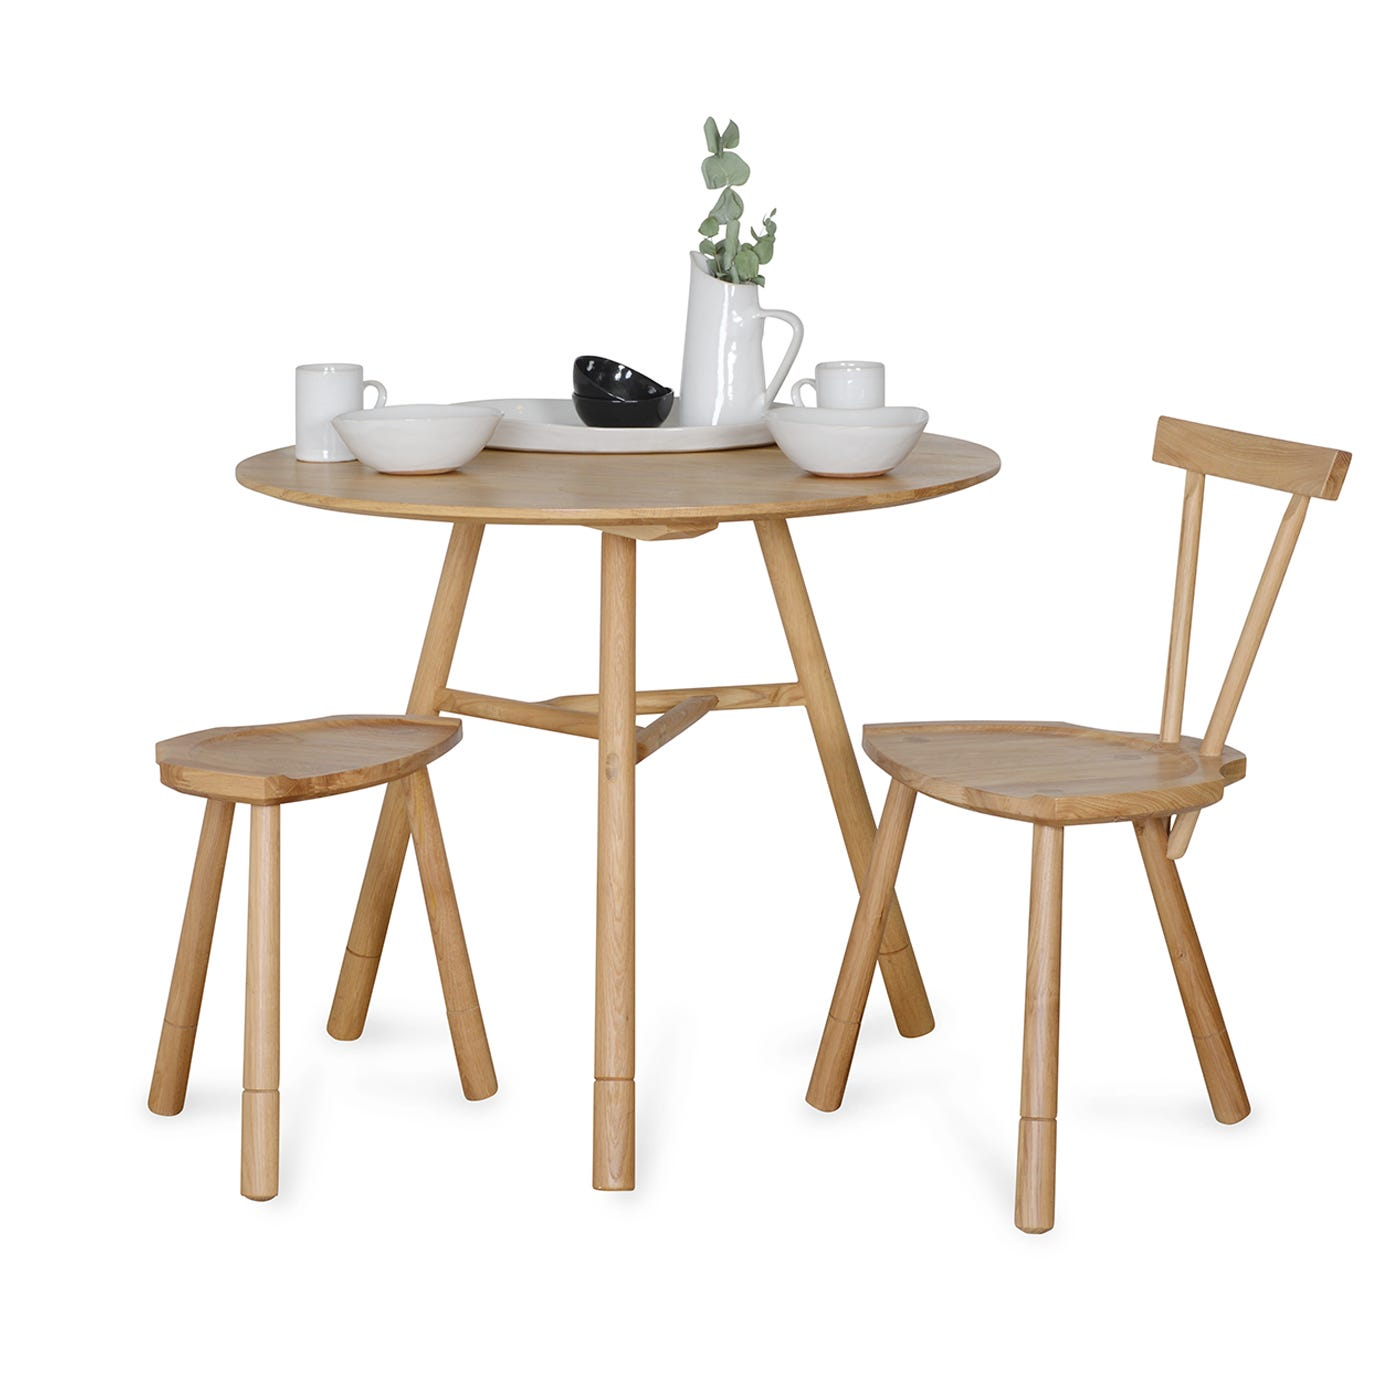 Heal 39 s whitstable 3 4 seater circular dining table for Table 6 seater